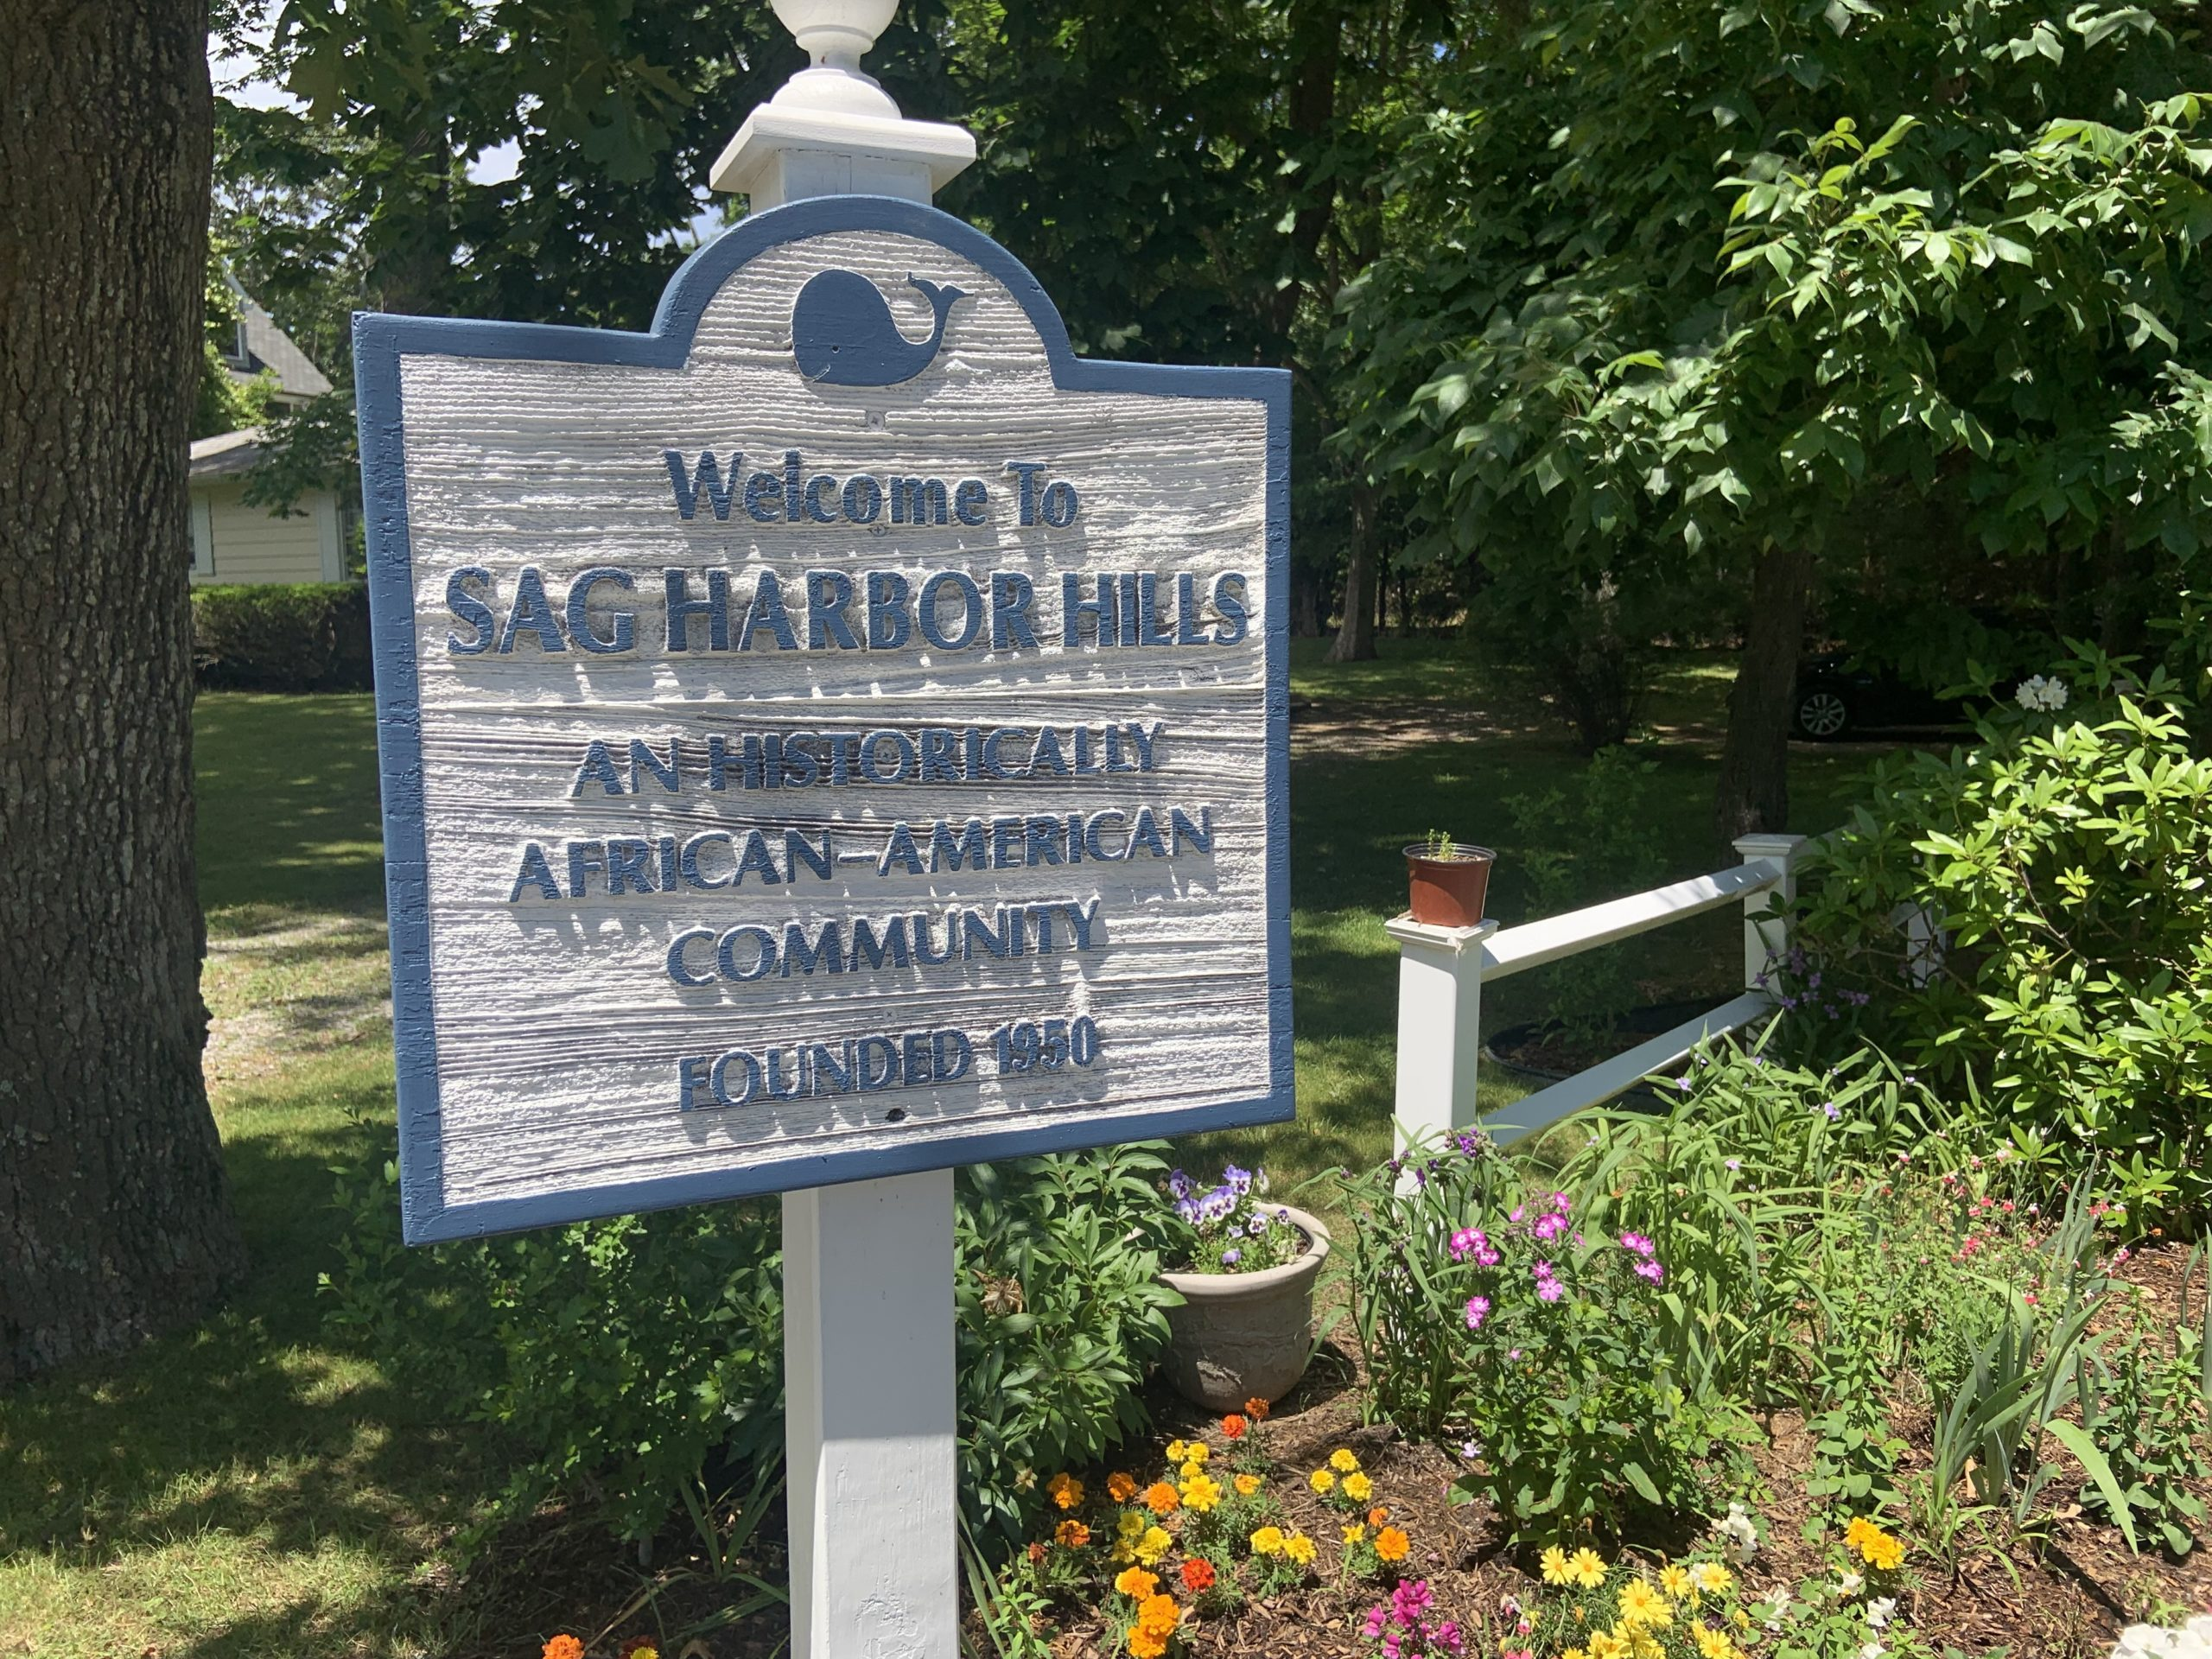 A sign at the entrance to the Sag Harbor Hills neighborhood in Sag Harbor refers to its history as an African American community. STEPHEN J. KOTZ